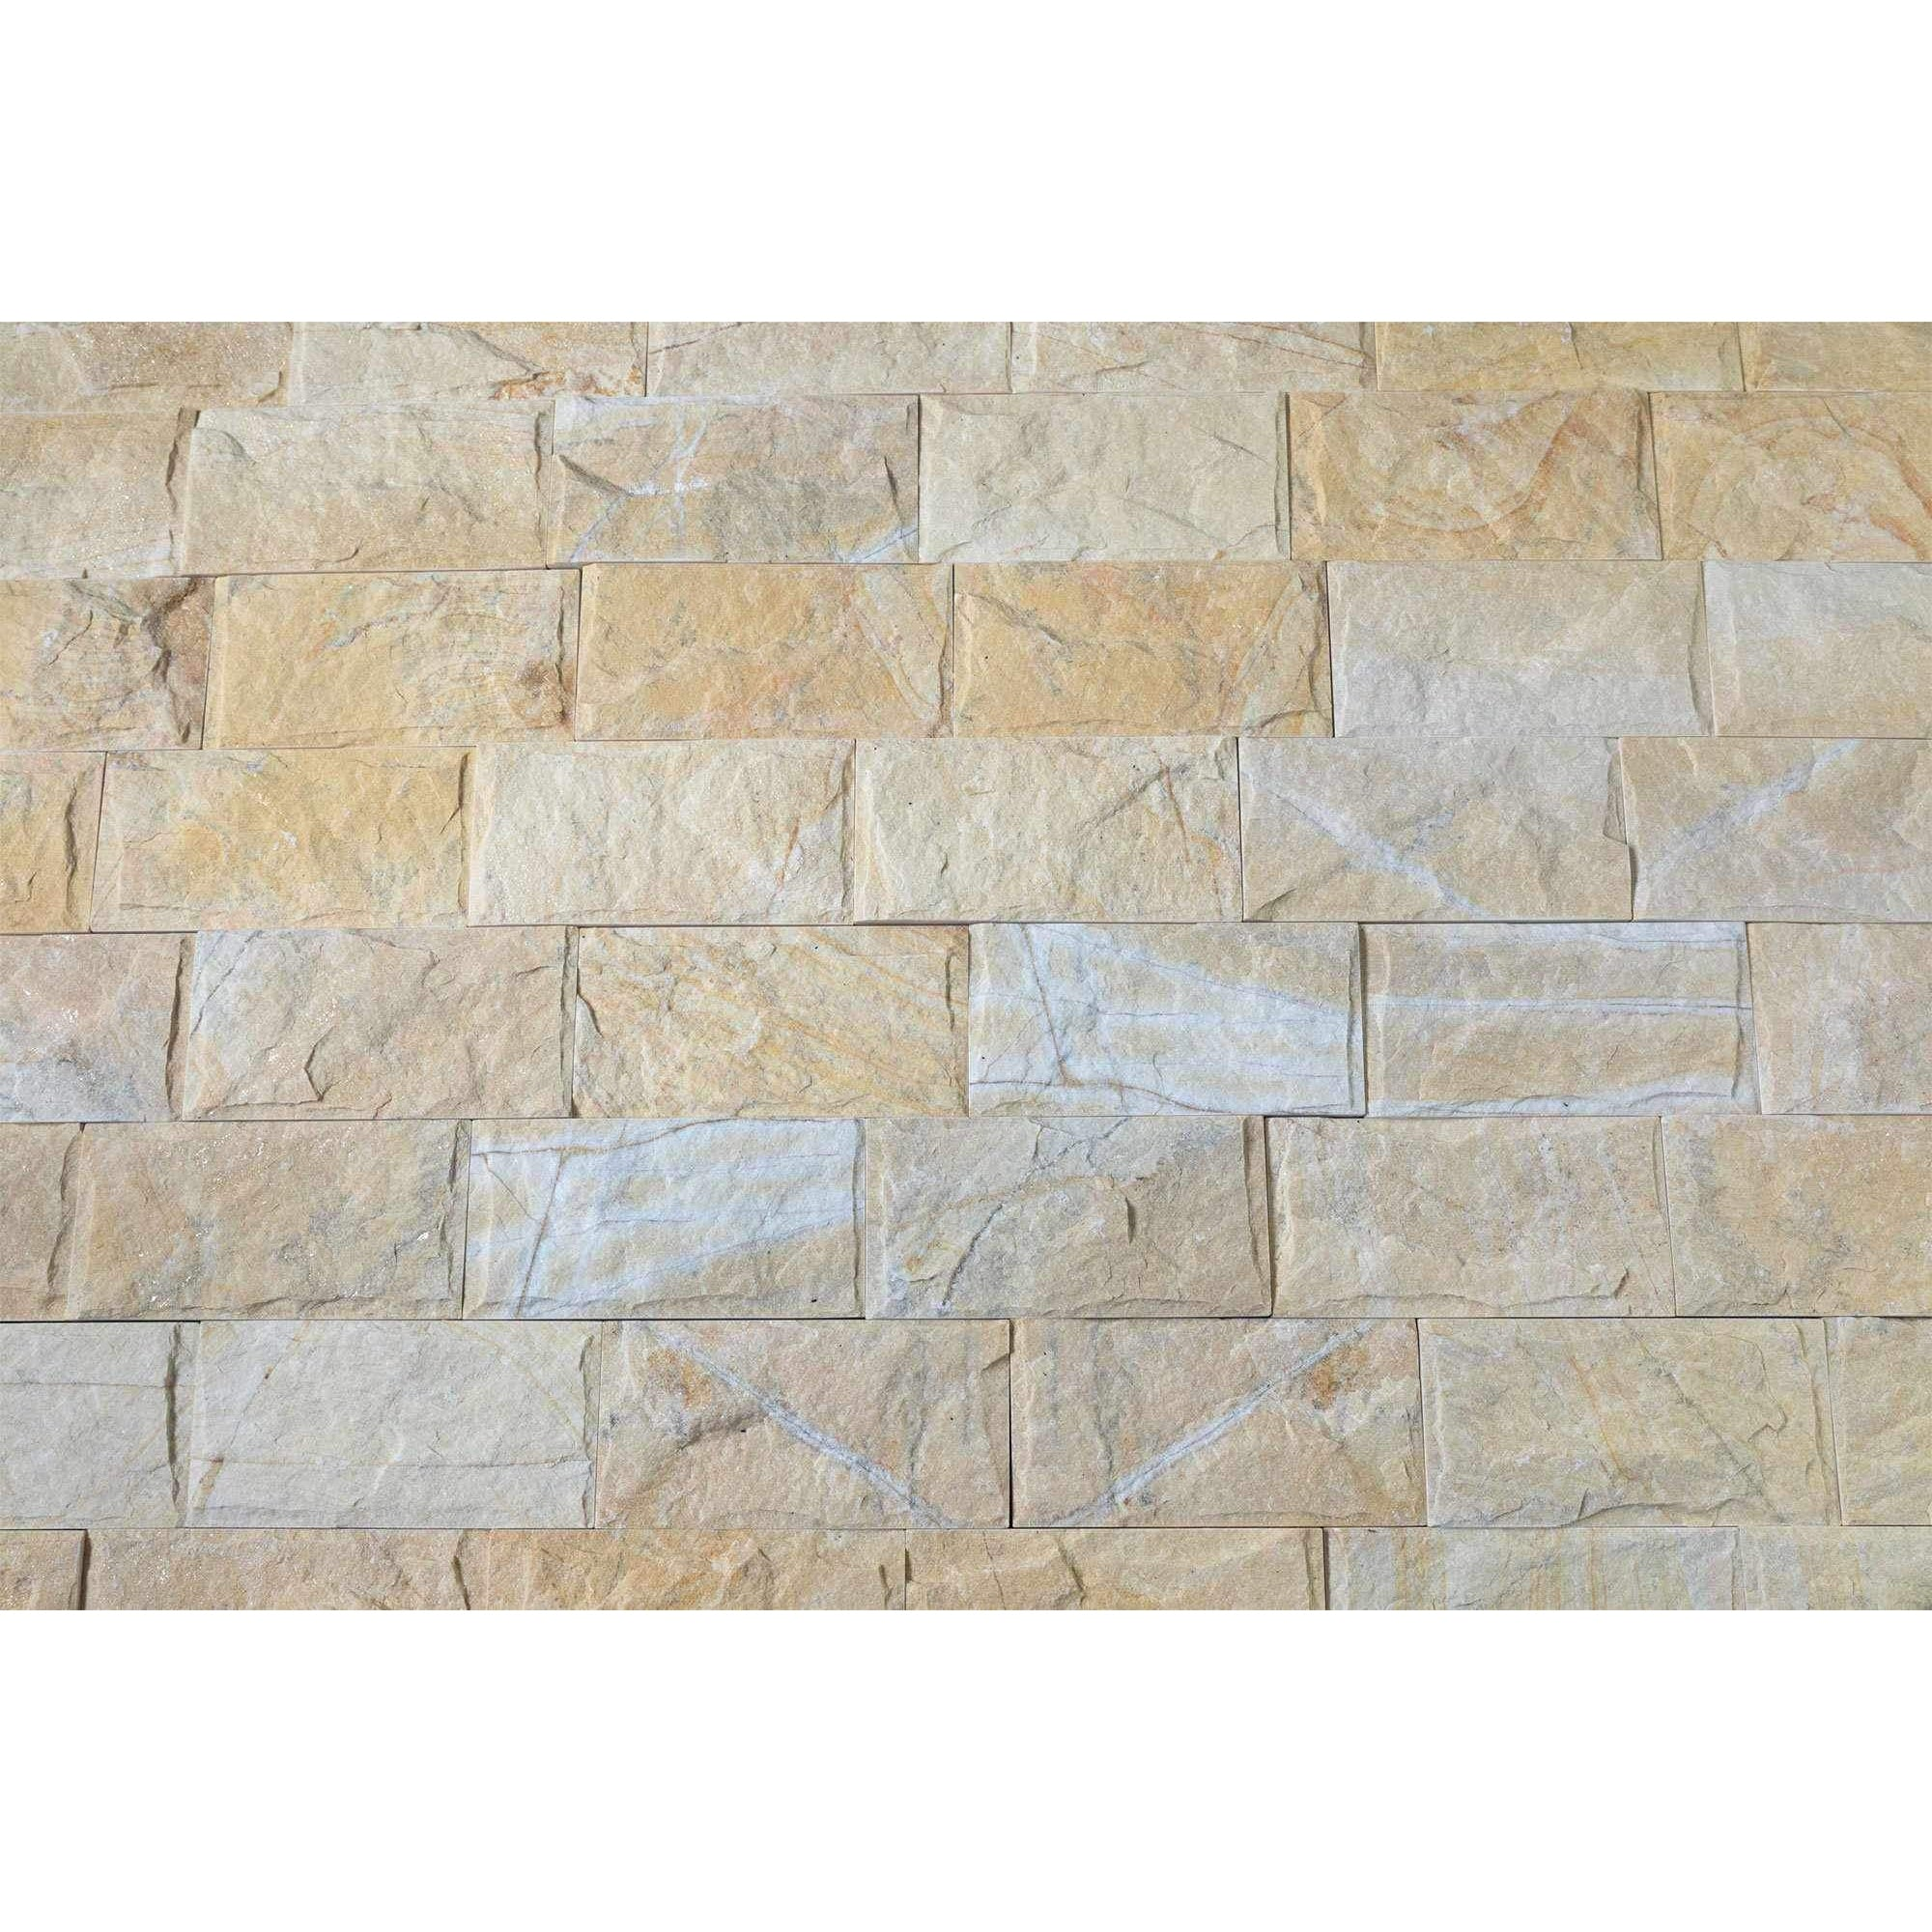 Natural Stacked Stone Feature Wall Cladding Panels - Golden Mushroom-Wall Cladding-Stone and Rock